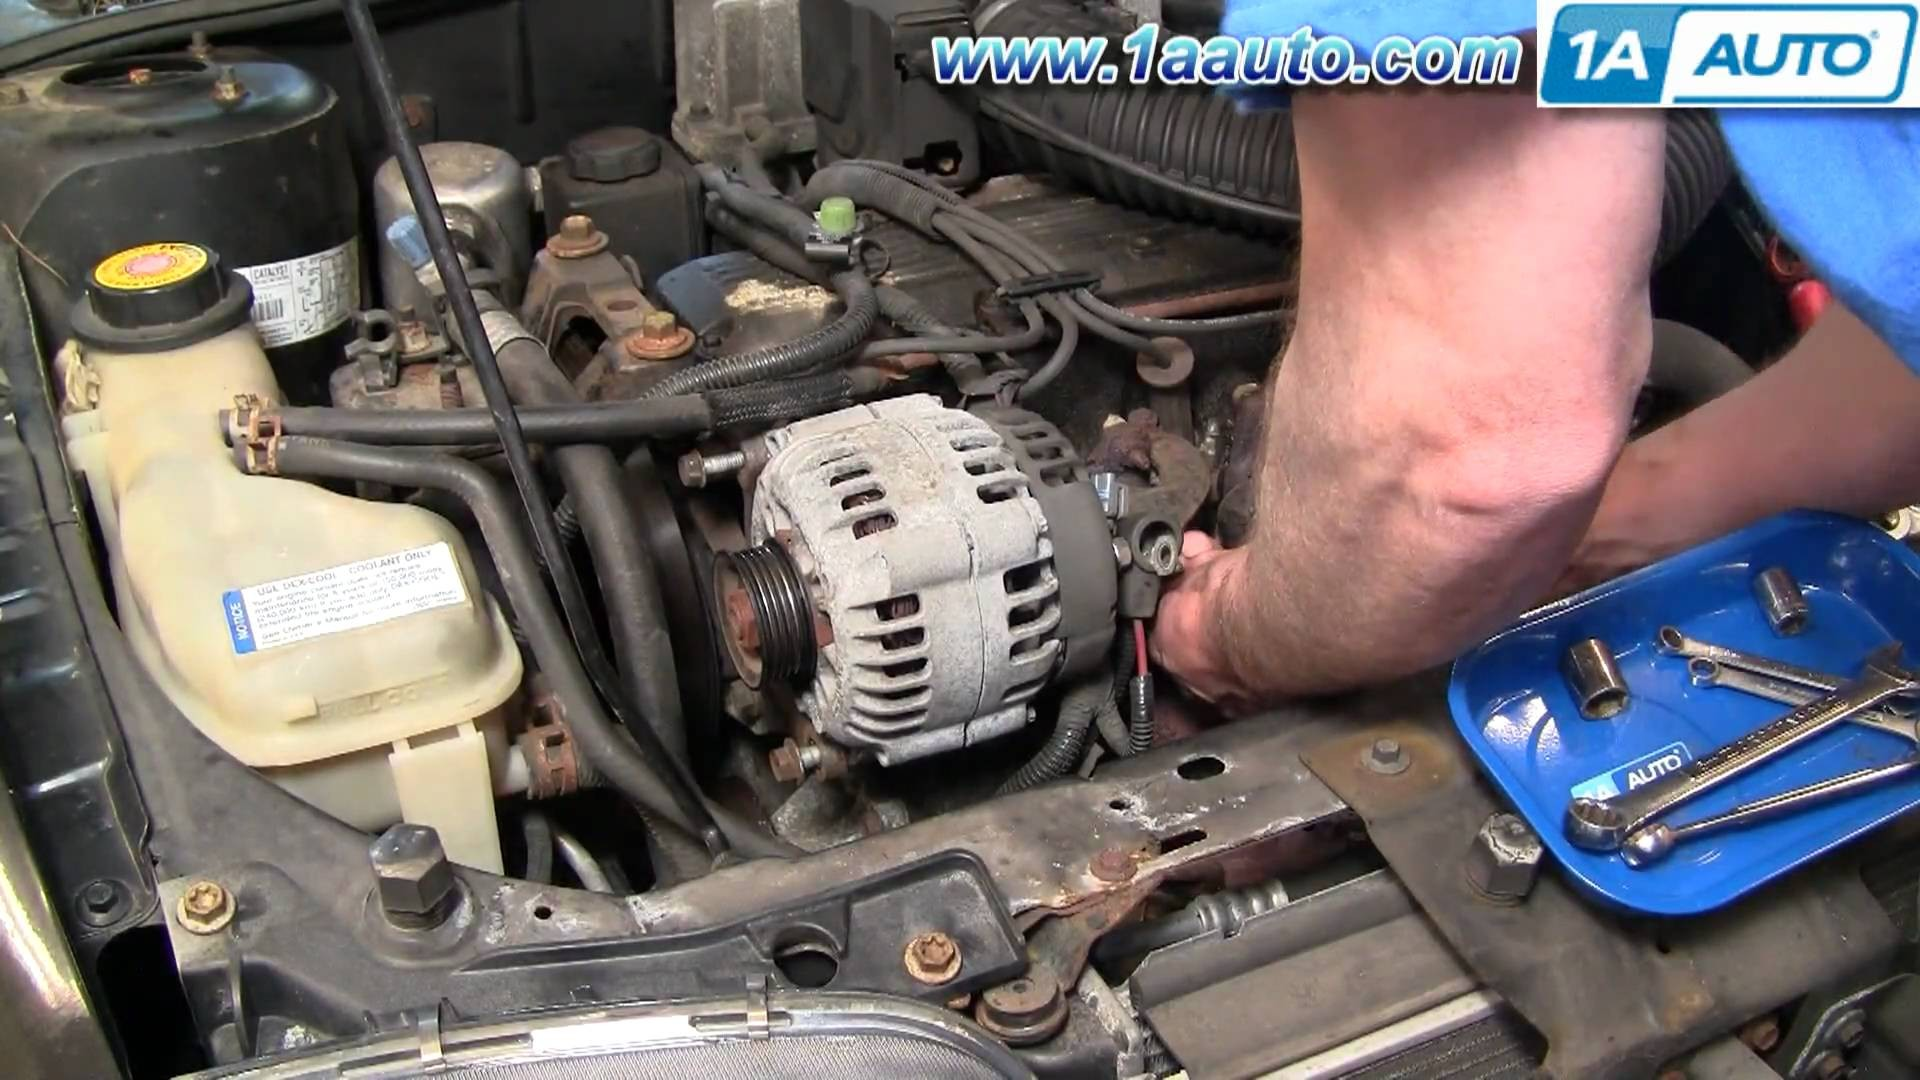 1998 Chevy Cavalier Engine Diagram How to Install Replace Alternator Cavalier Sunfire 2 2l 95 05 1aauto Of 1998 Chevy Cavalier Engine Diagram